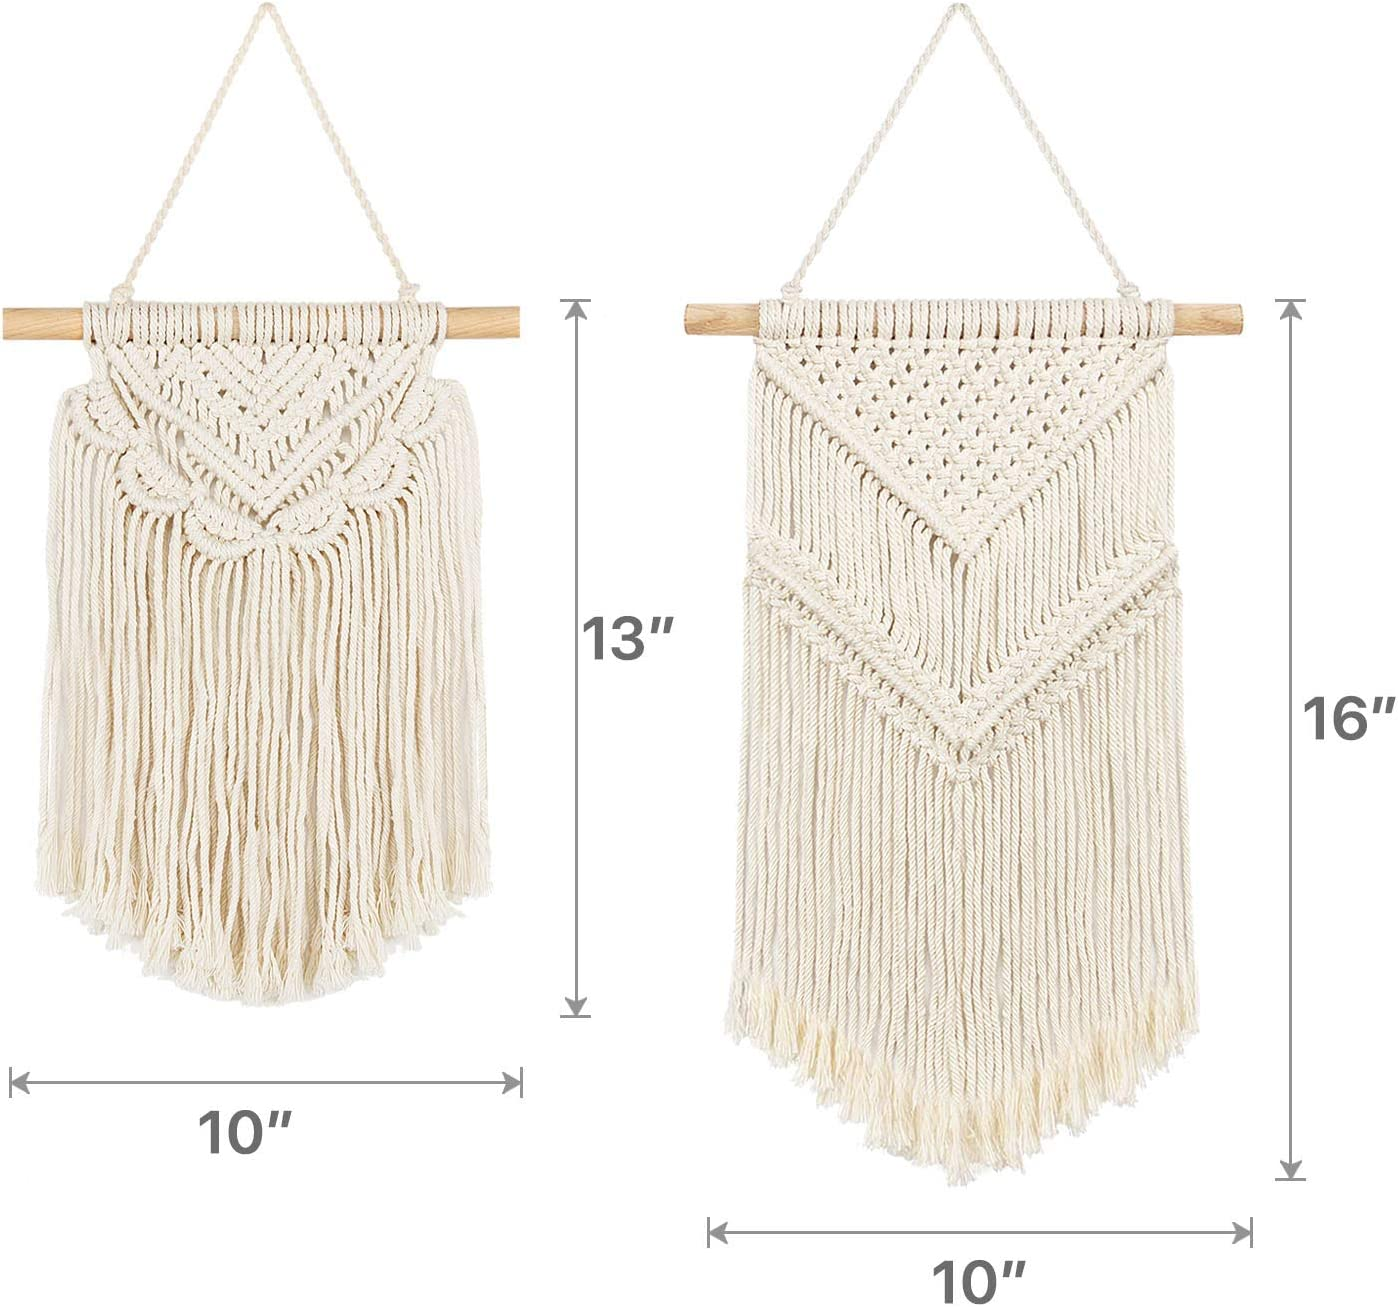 13 L x 10 W and 16 L x 10 W Taufey 2 Pcs Small Macrame Wall Hangings Art Woven Boho Chic Wall Decor Home Decoration for Apartment Bedroom Living Room Hallway